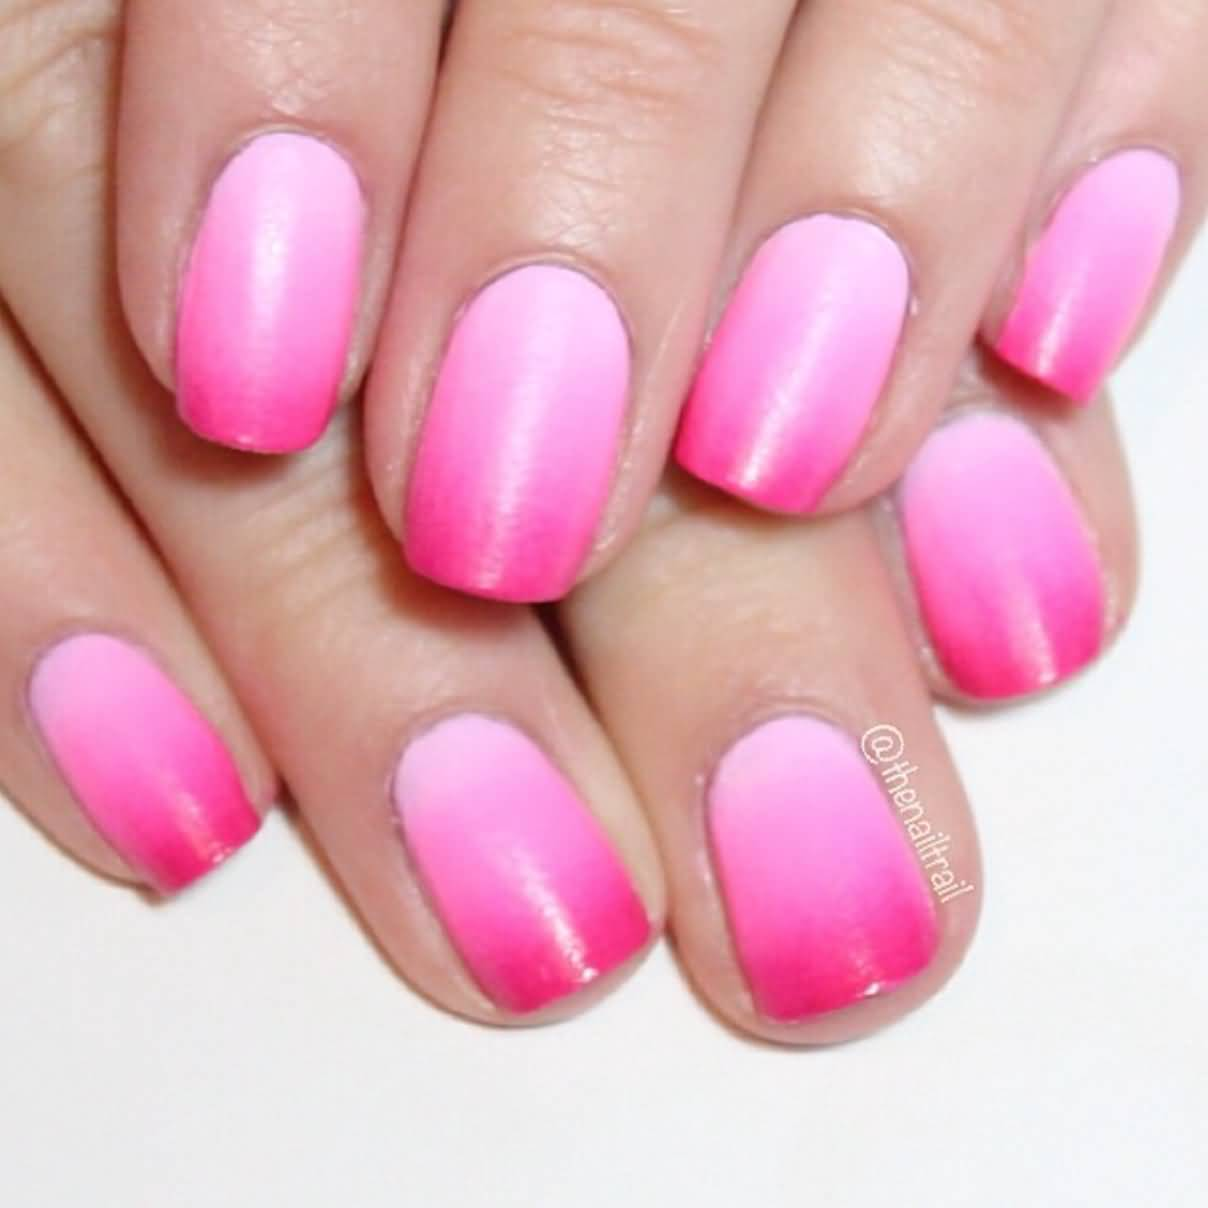 40 easy ombre nail art ideas for girls pink color ombre nail art design idea prinsesfo Gallery